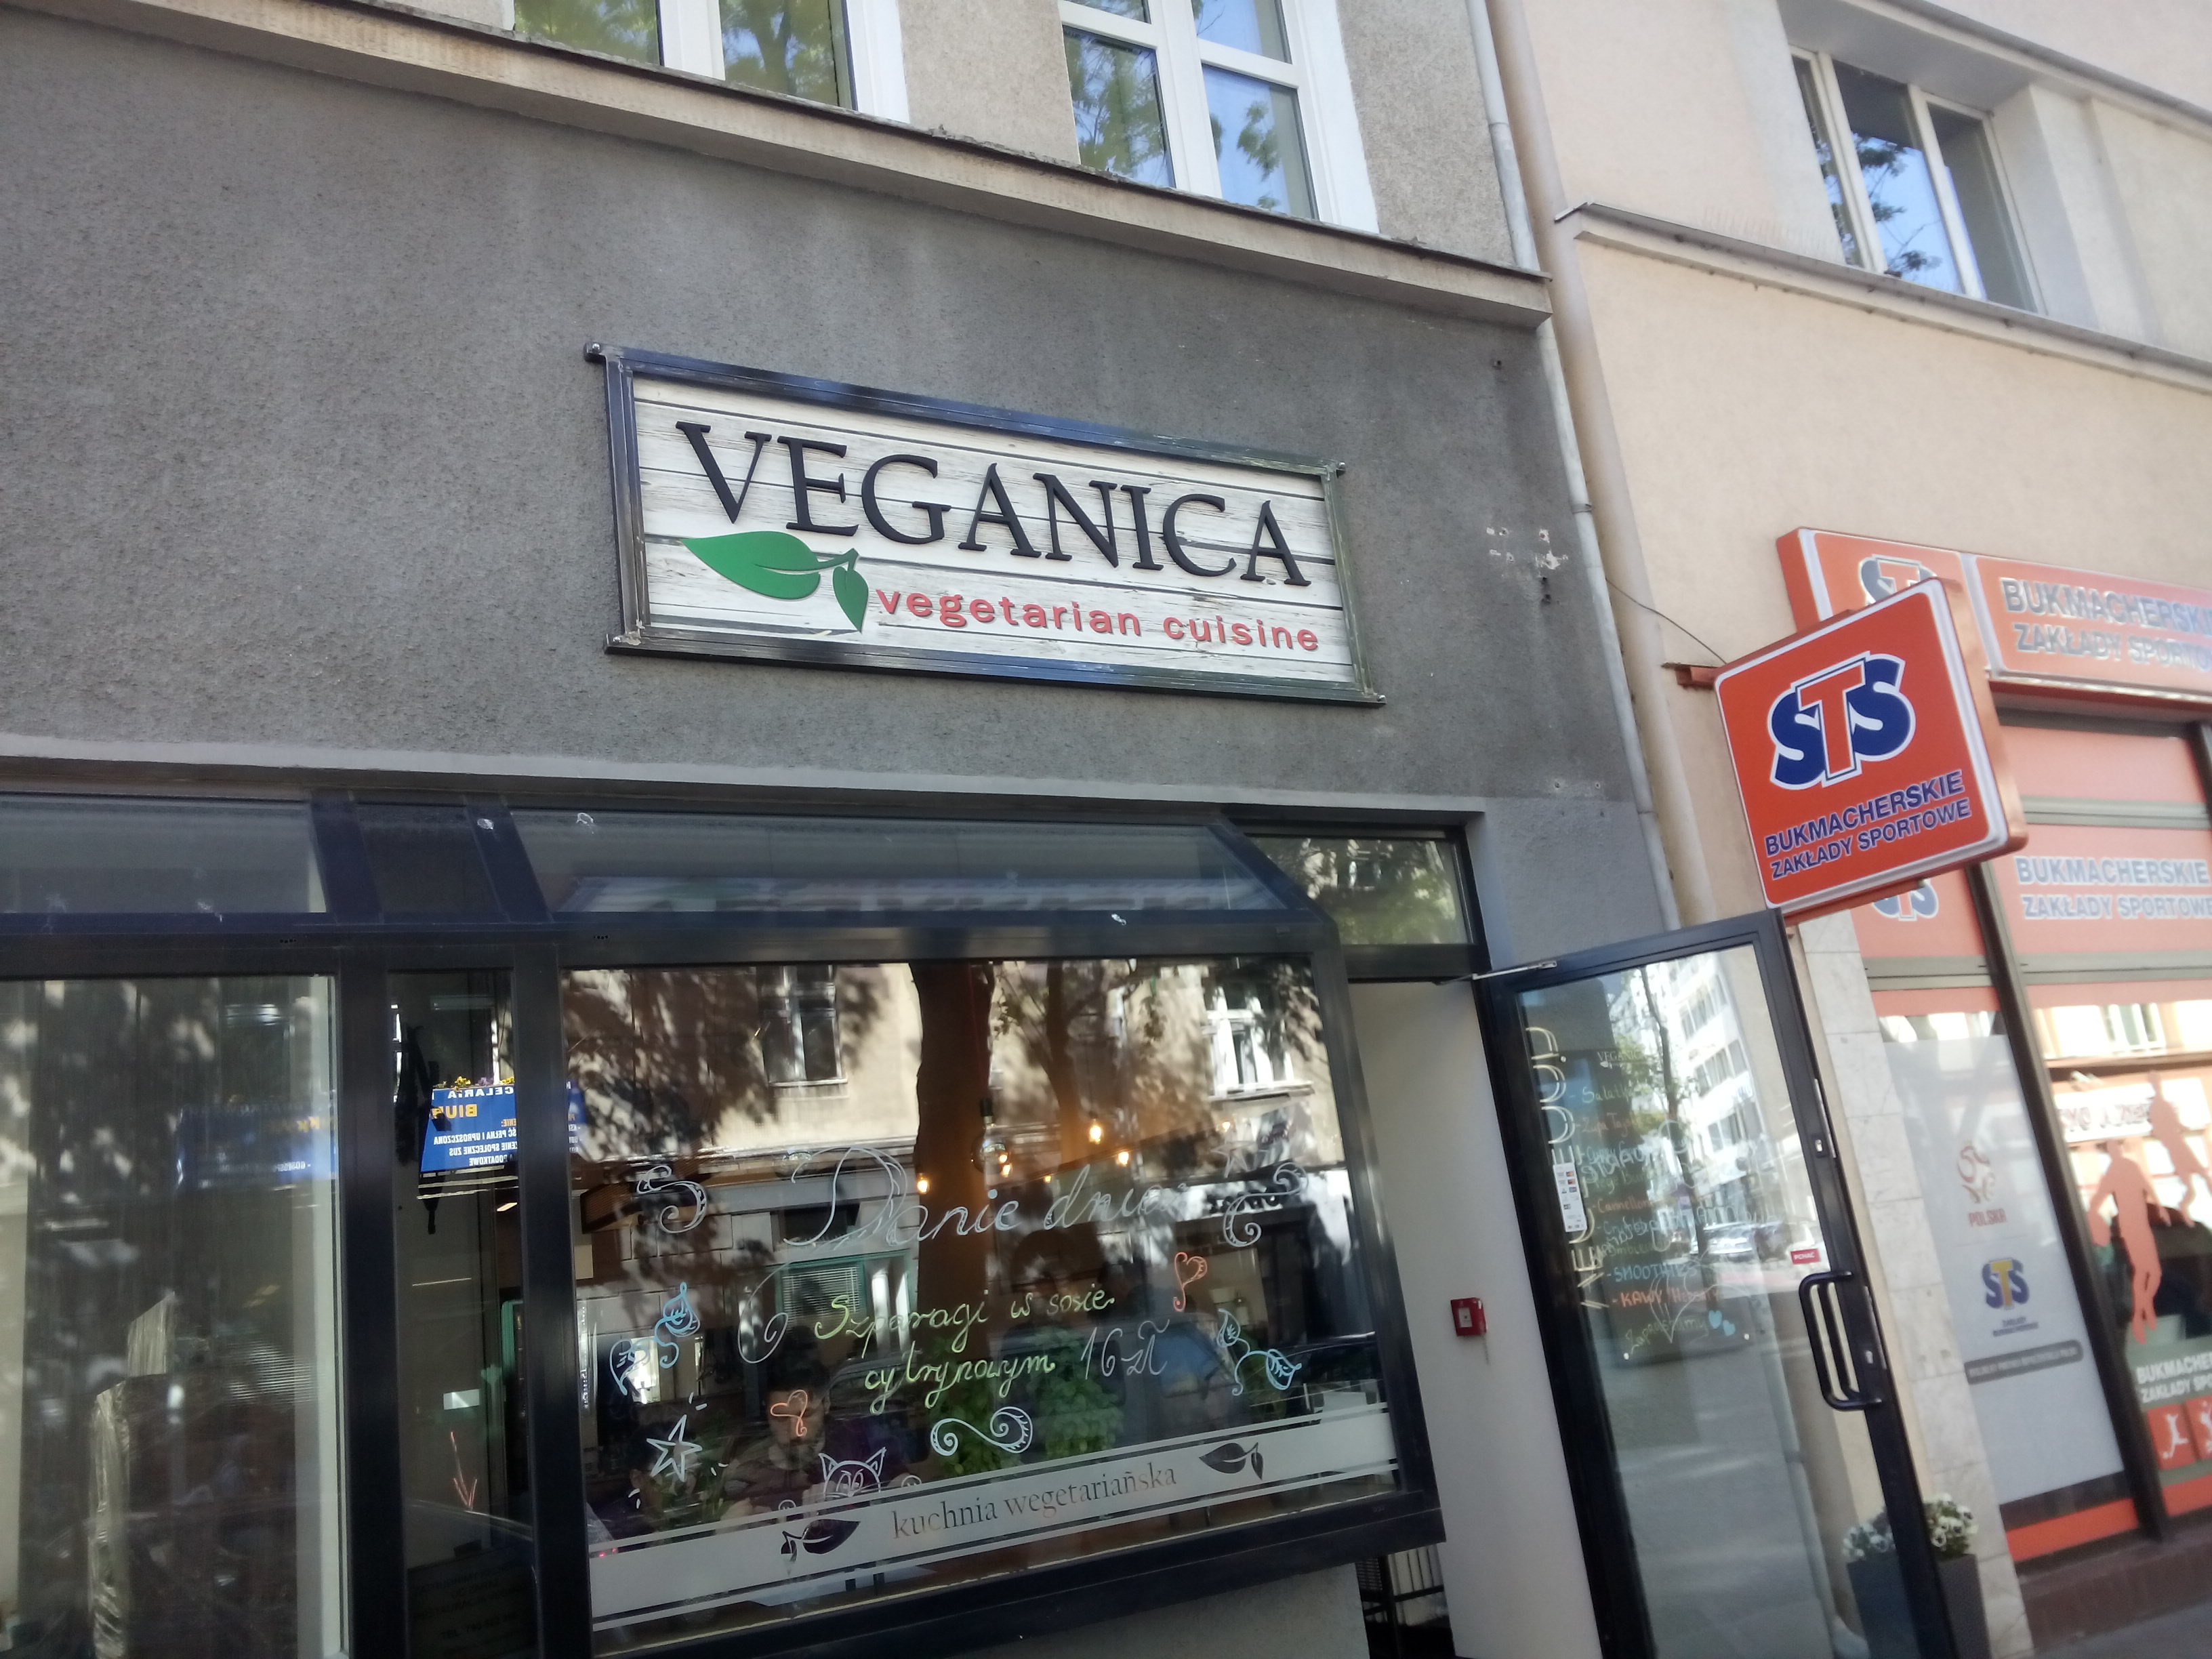 A concrete-fronted shop, glass window, and 'veganica' sign.